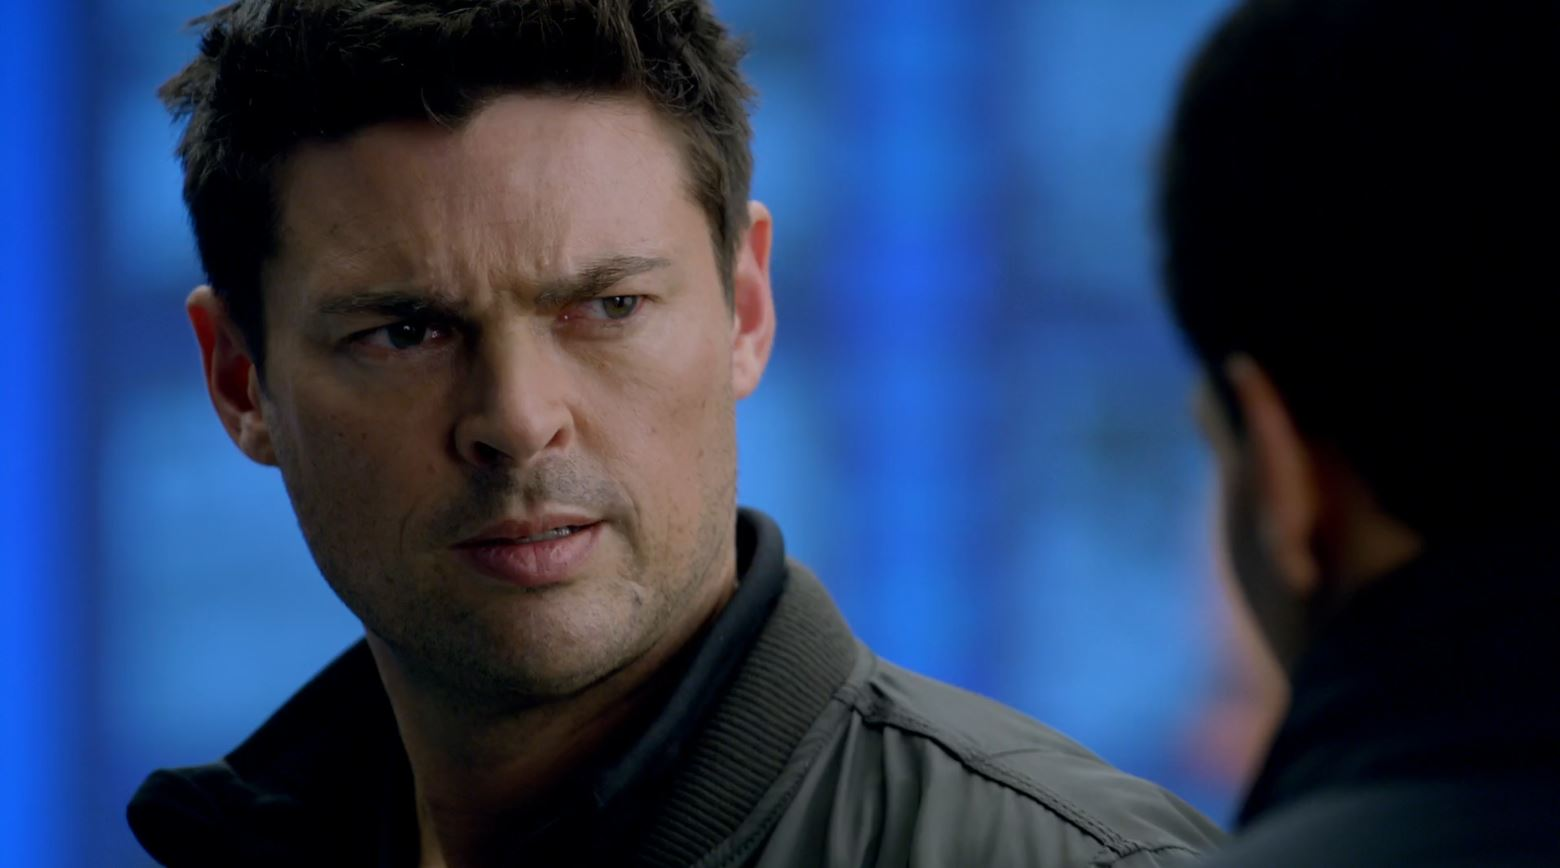 Almost Human - John Kennex played by Karl Urban